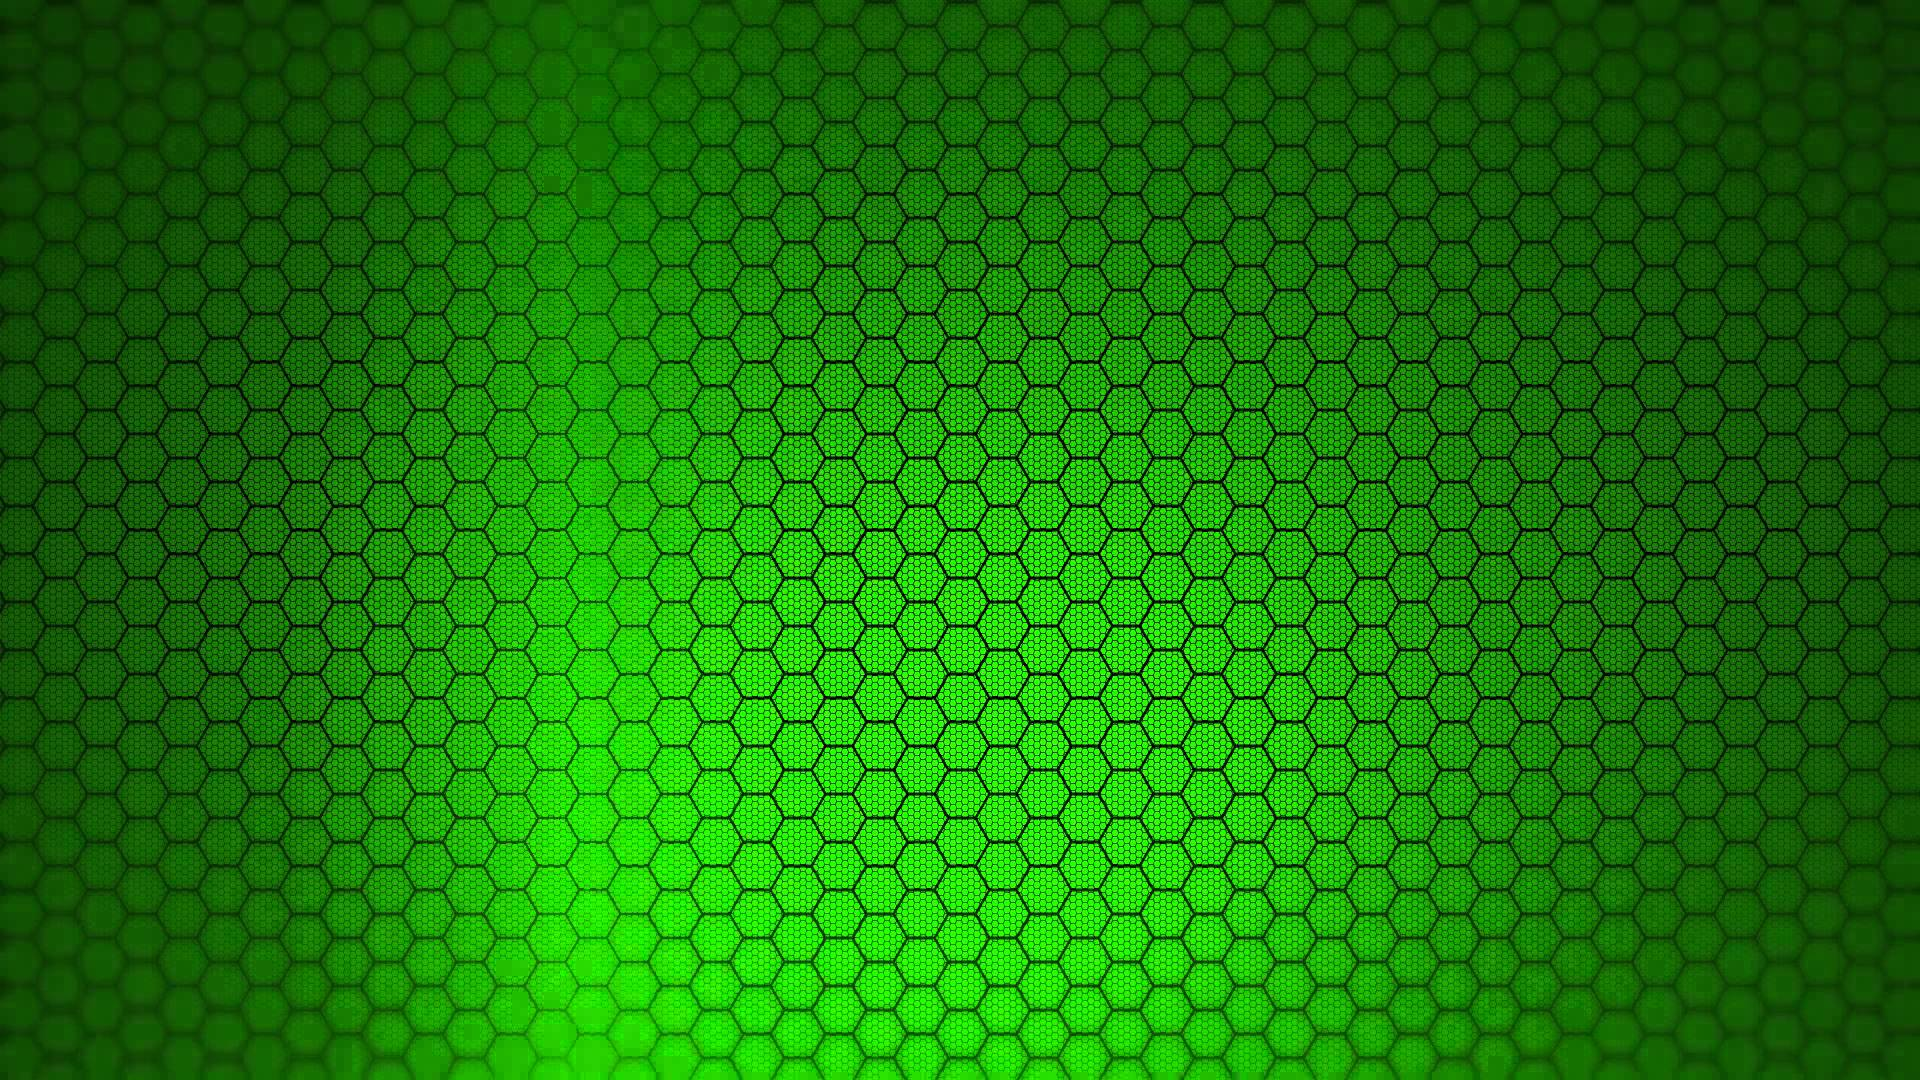 Green Hexagonal Cell Background Images 4710.2 Kb